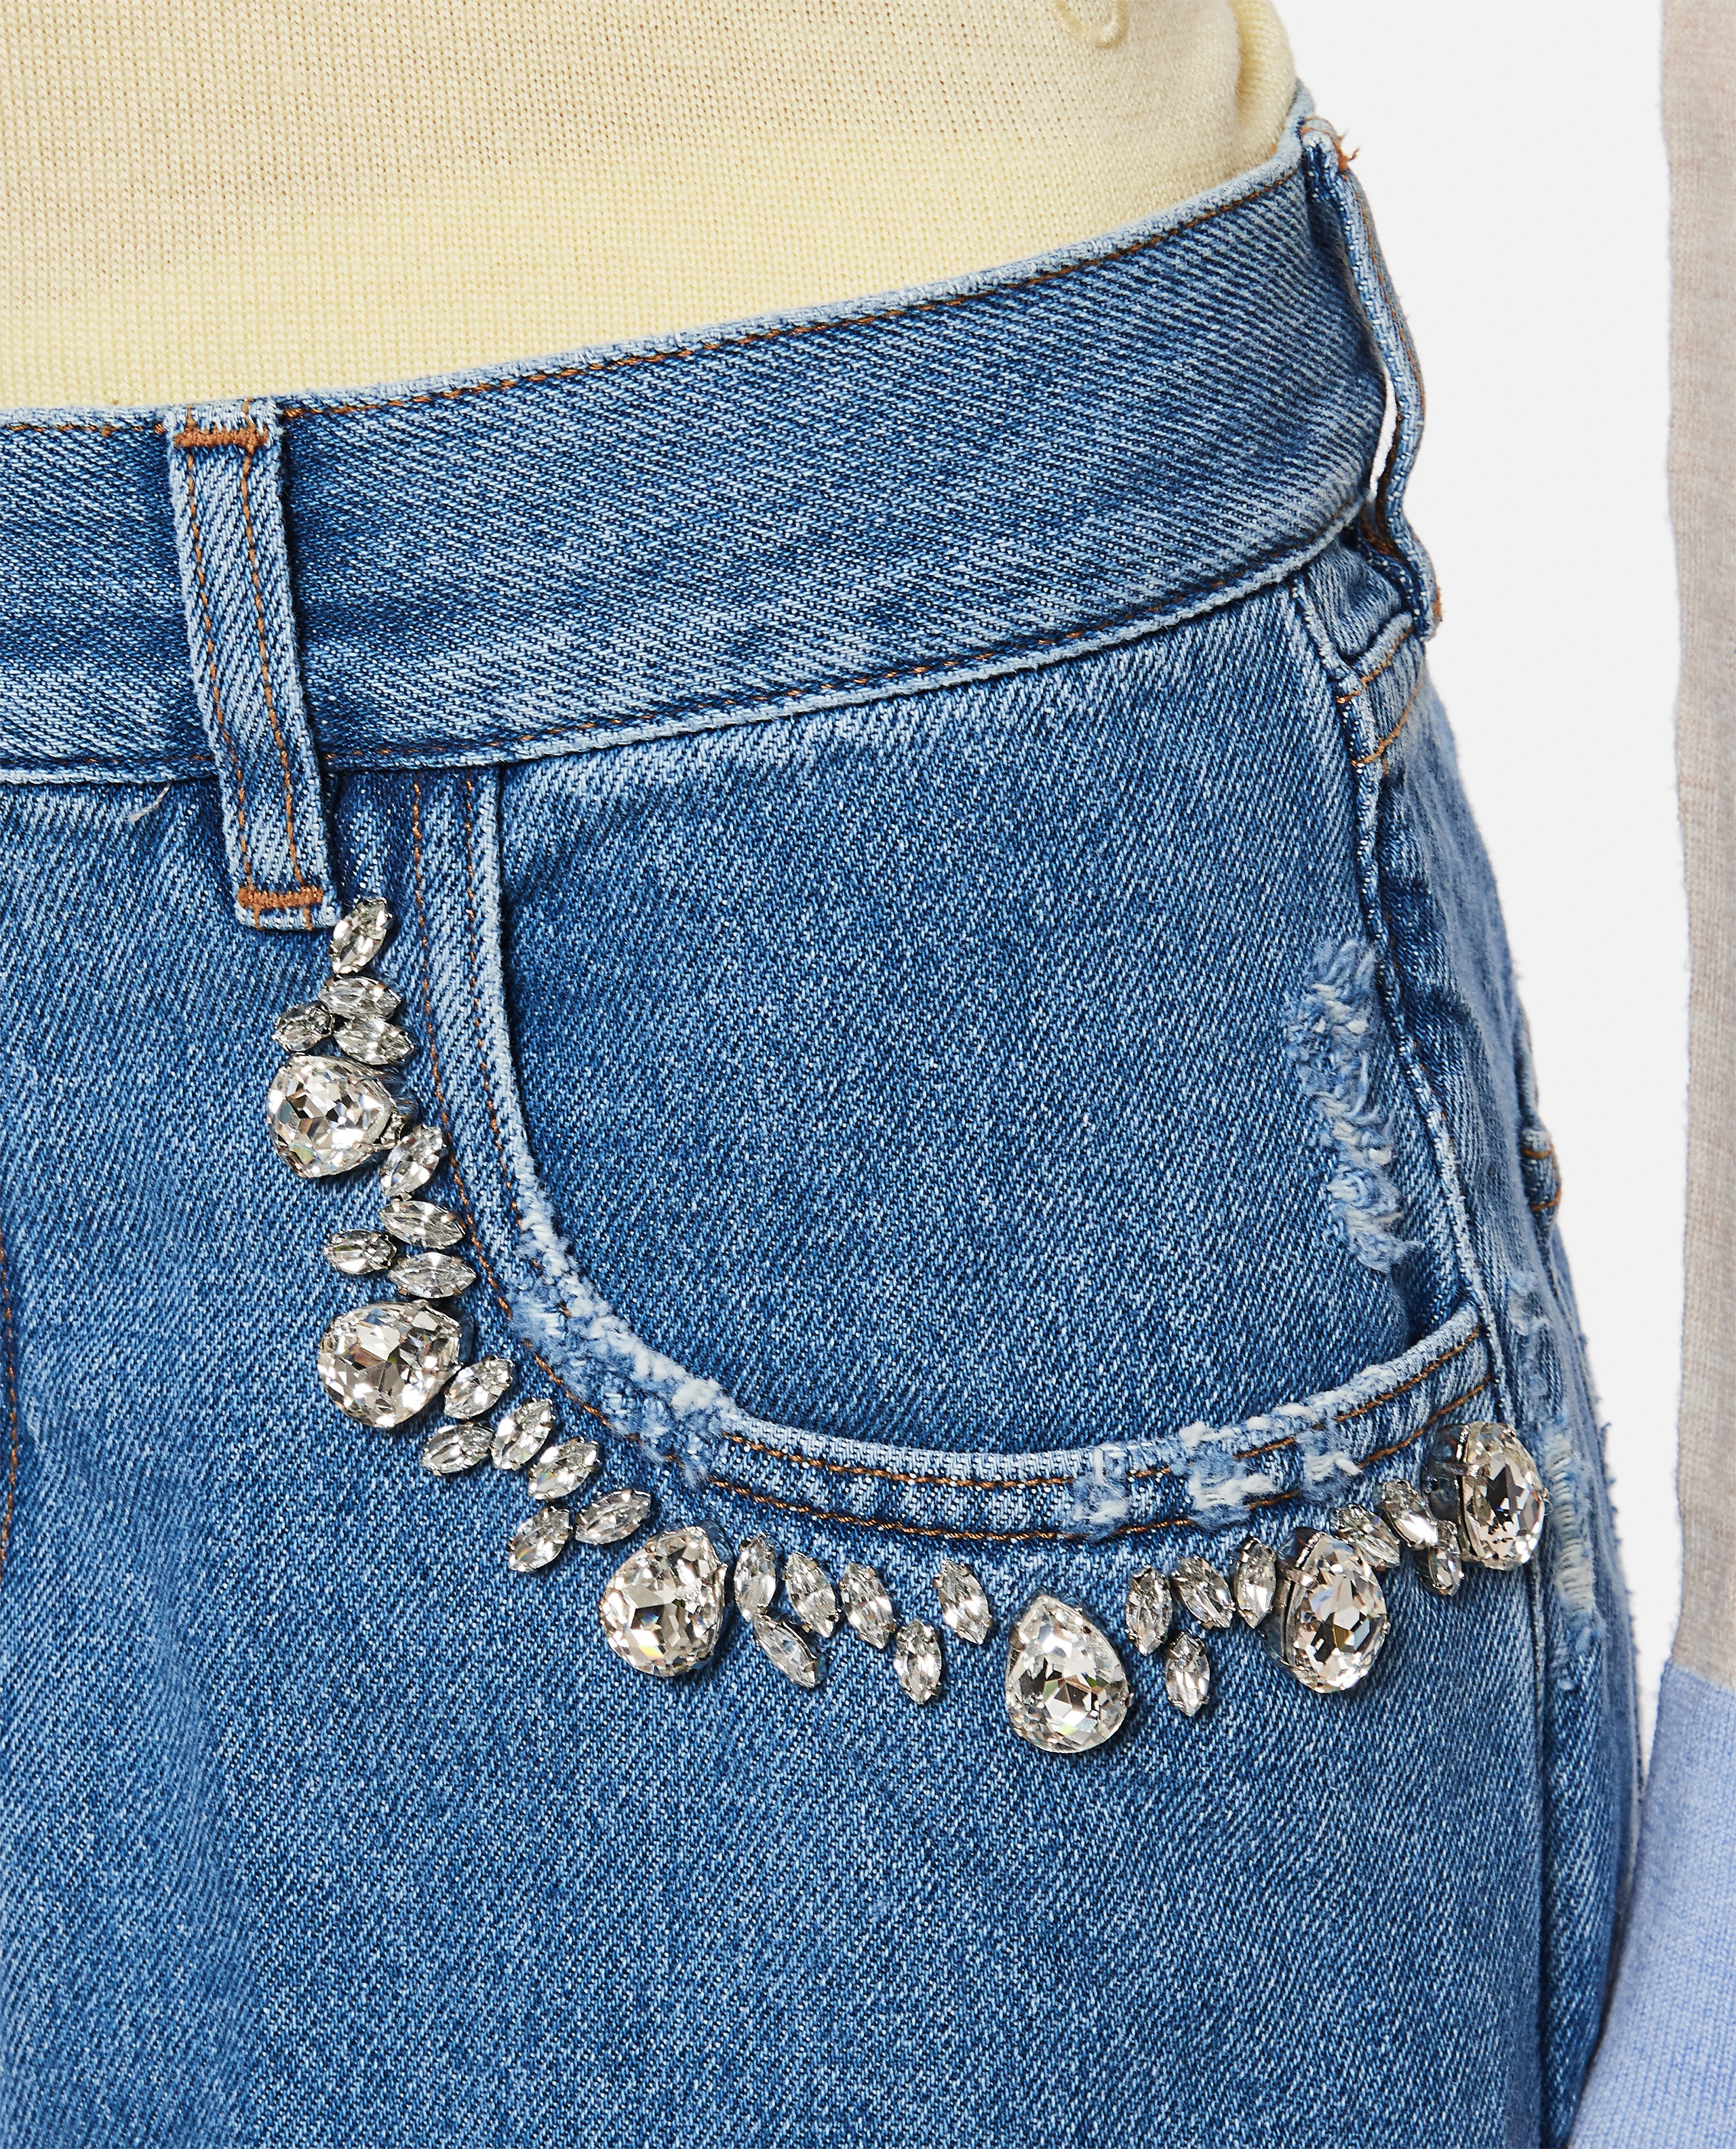 Kim jeans in denim with applied crystals Women Golden Goose 000286420042265 4